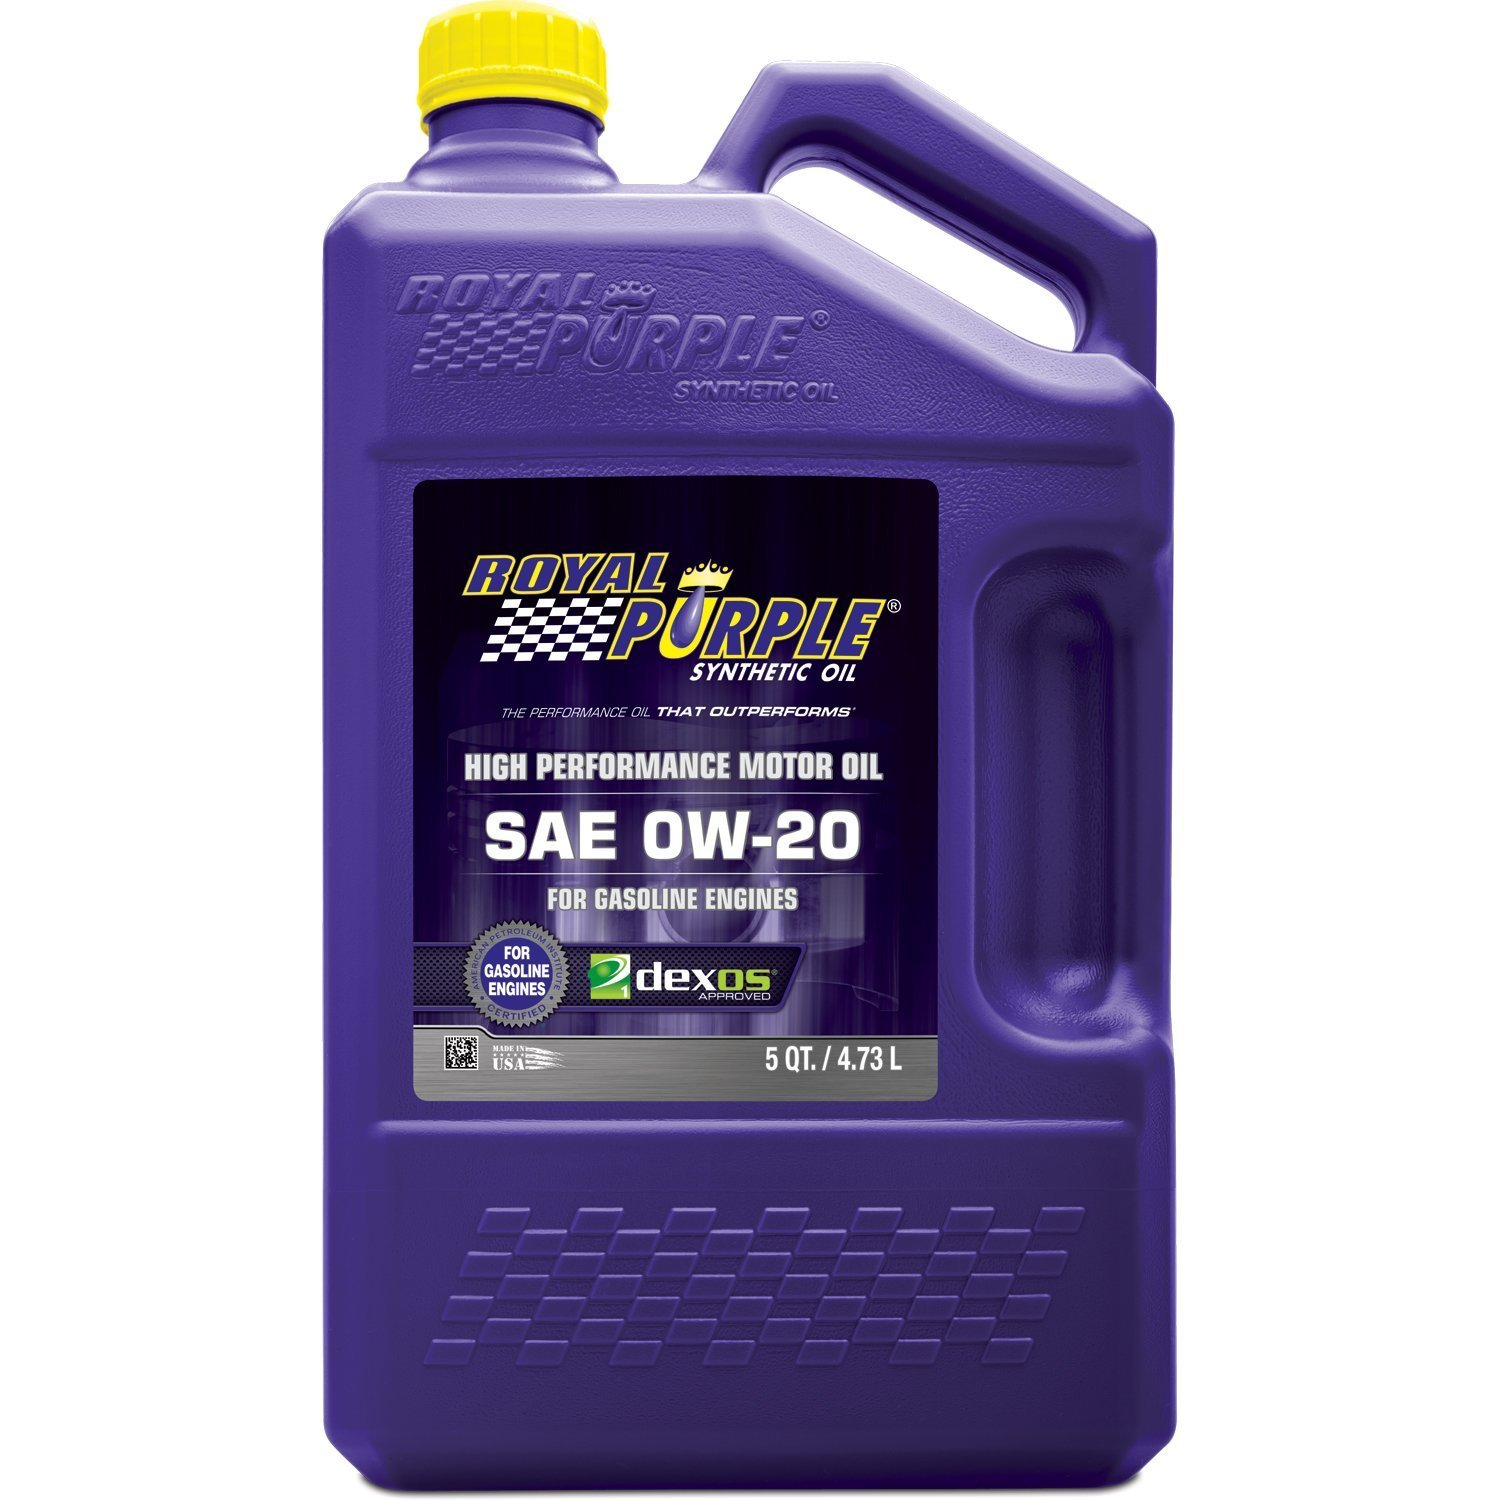 Royal Purple 51020 API-Licensed SAE 0W-20 High Performance Synthetic Motor Oil - 5 qt